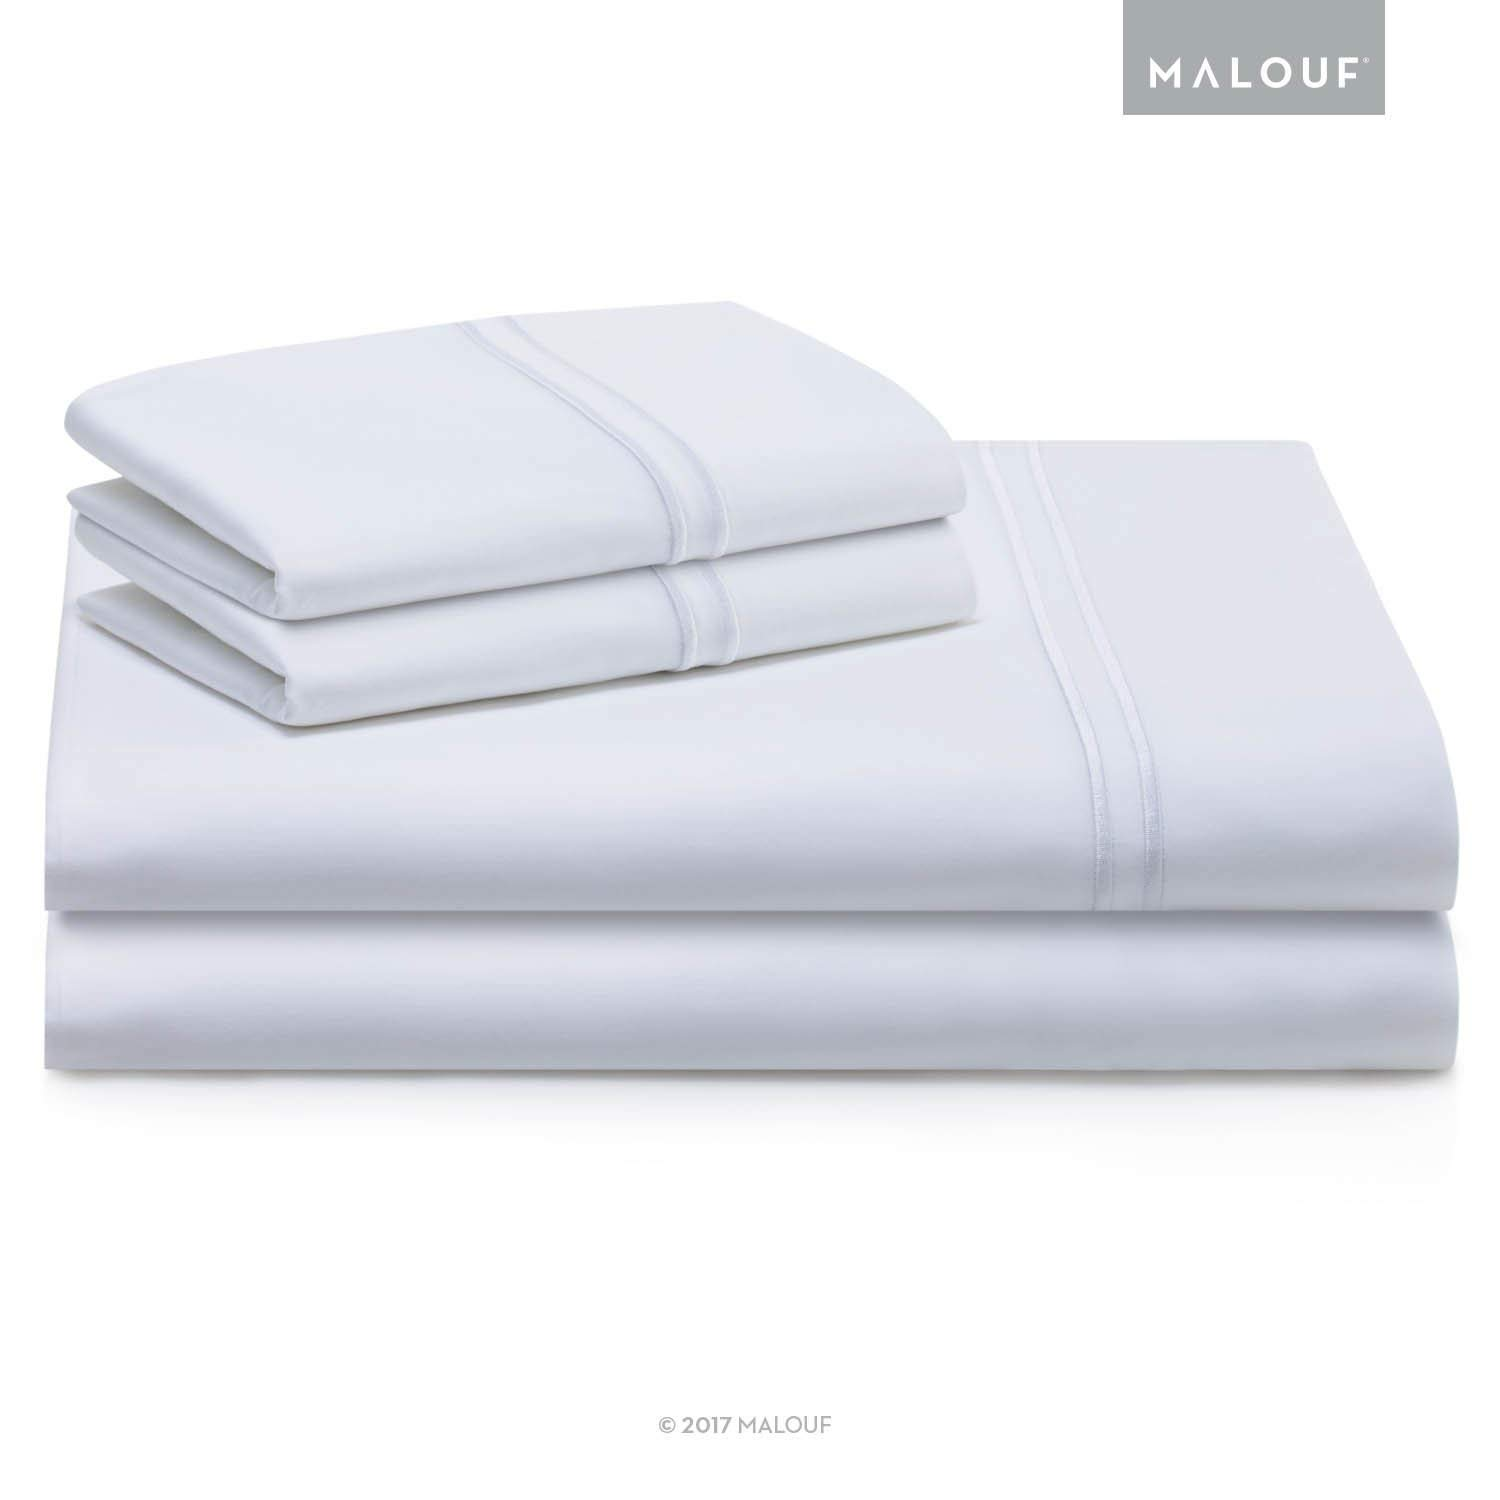 MALOUF Woven Supima Premium Cotton Sheets - 100 Percent American Grown - Extra Long Staple - Sateen Weave - Extra Deep Pockets - Single Ply - 600 Thread Count - King - White